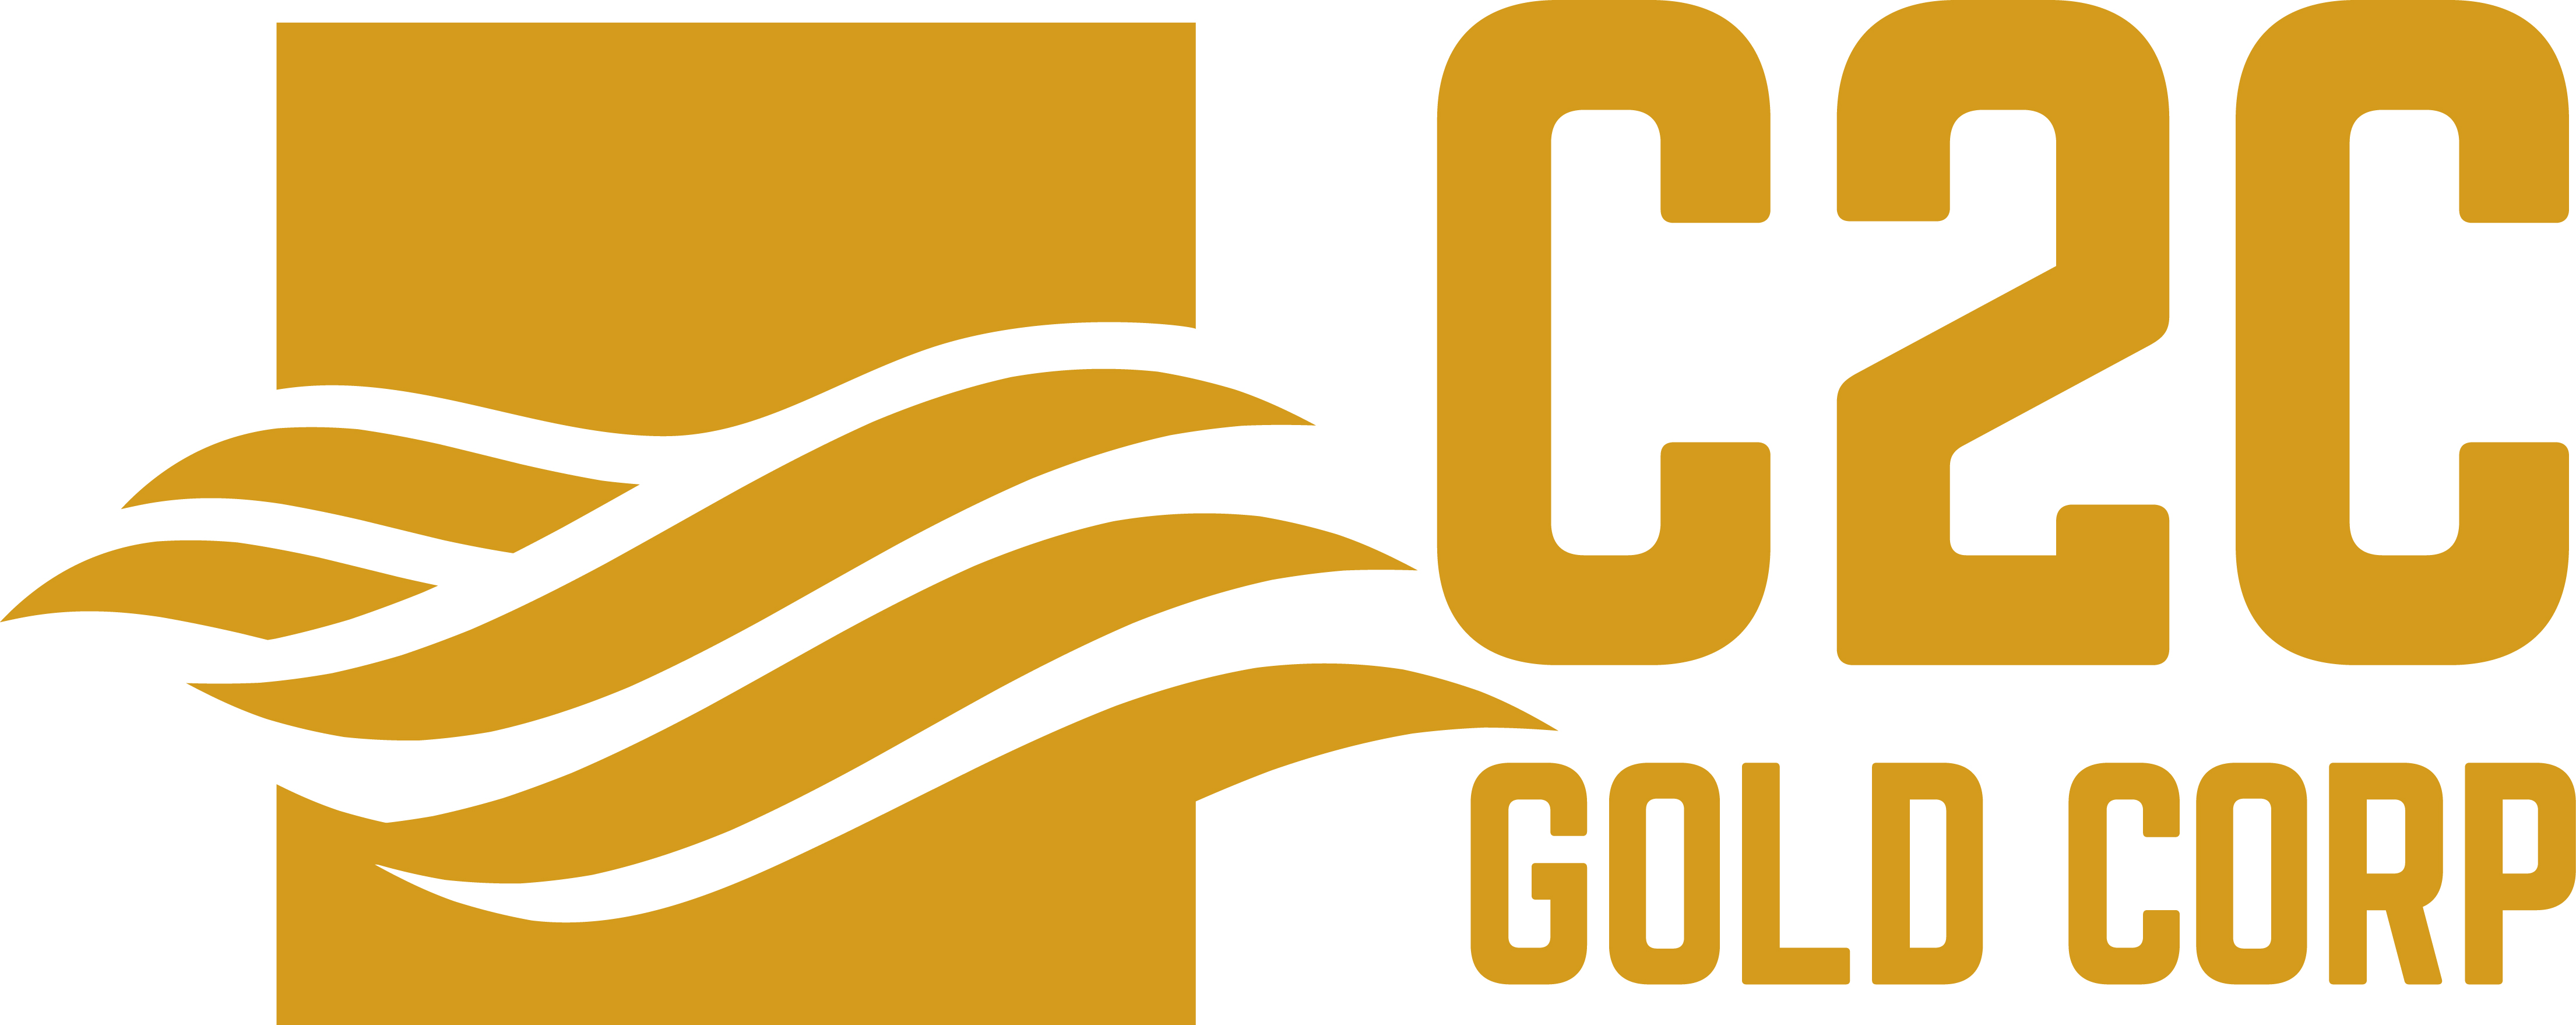 C2C Gold Announces Property Purchase Agreement With Engineer Gold Mines Ltd.